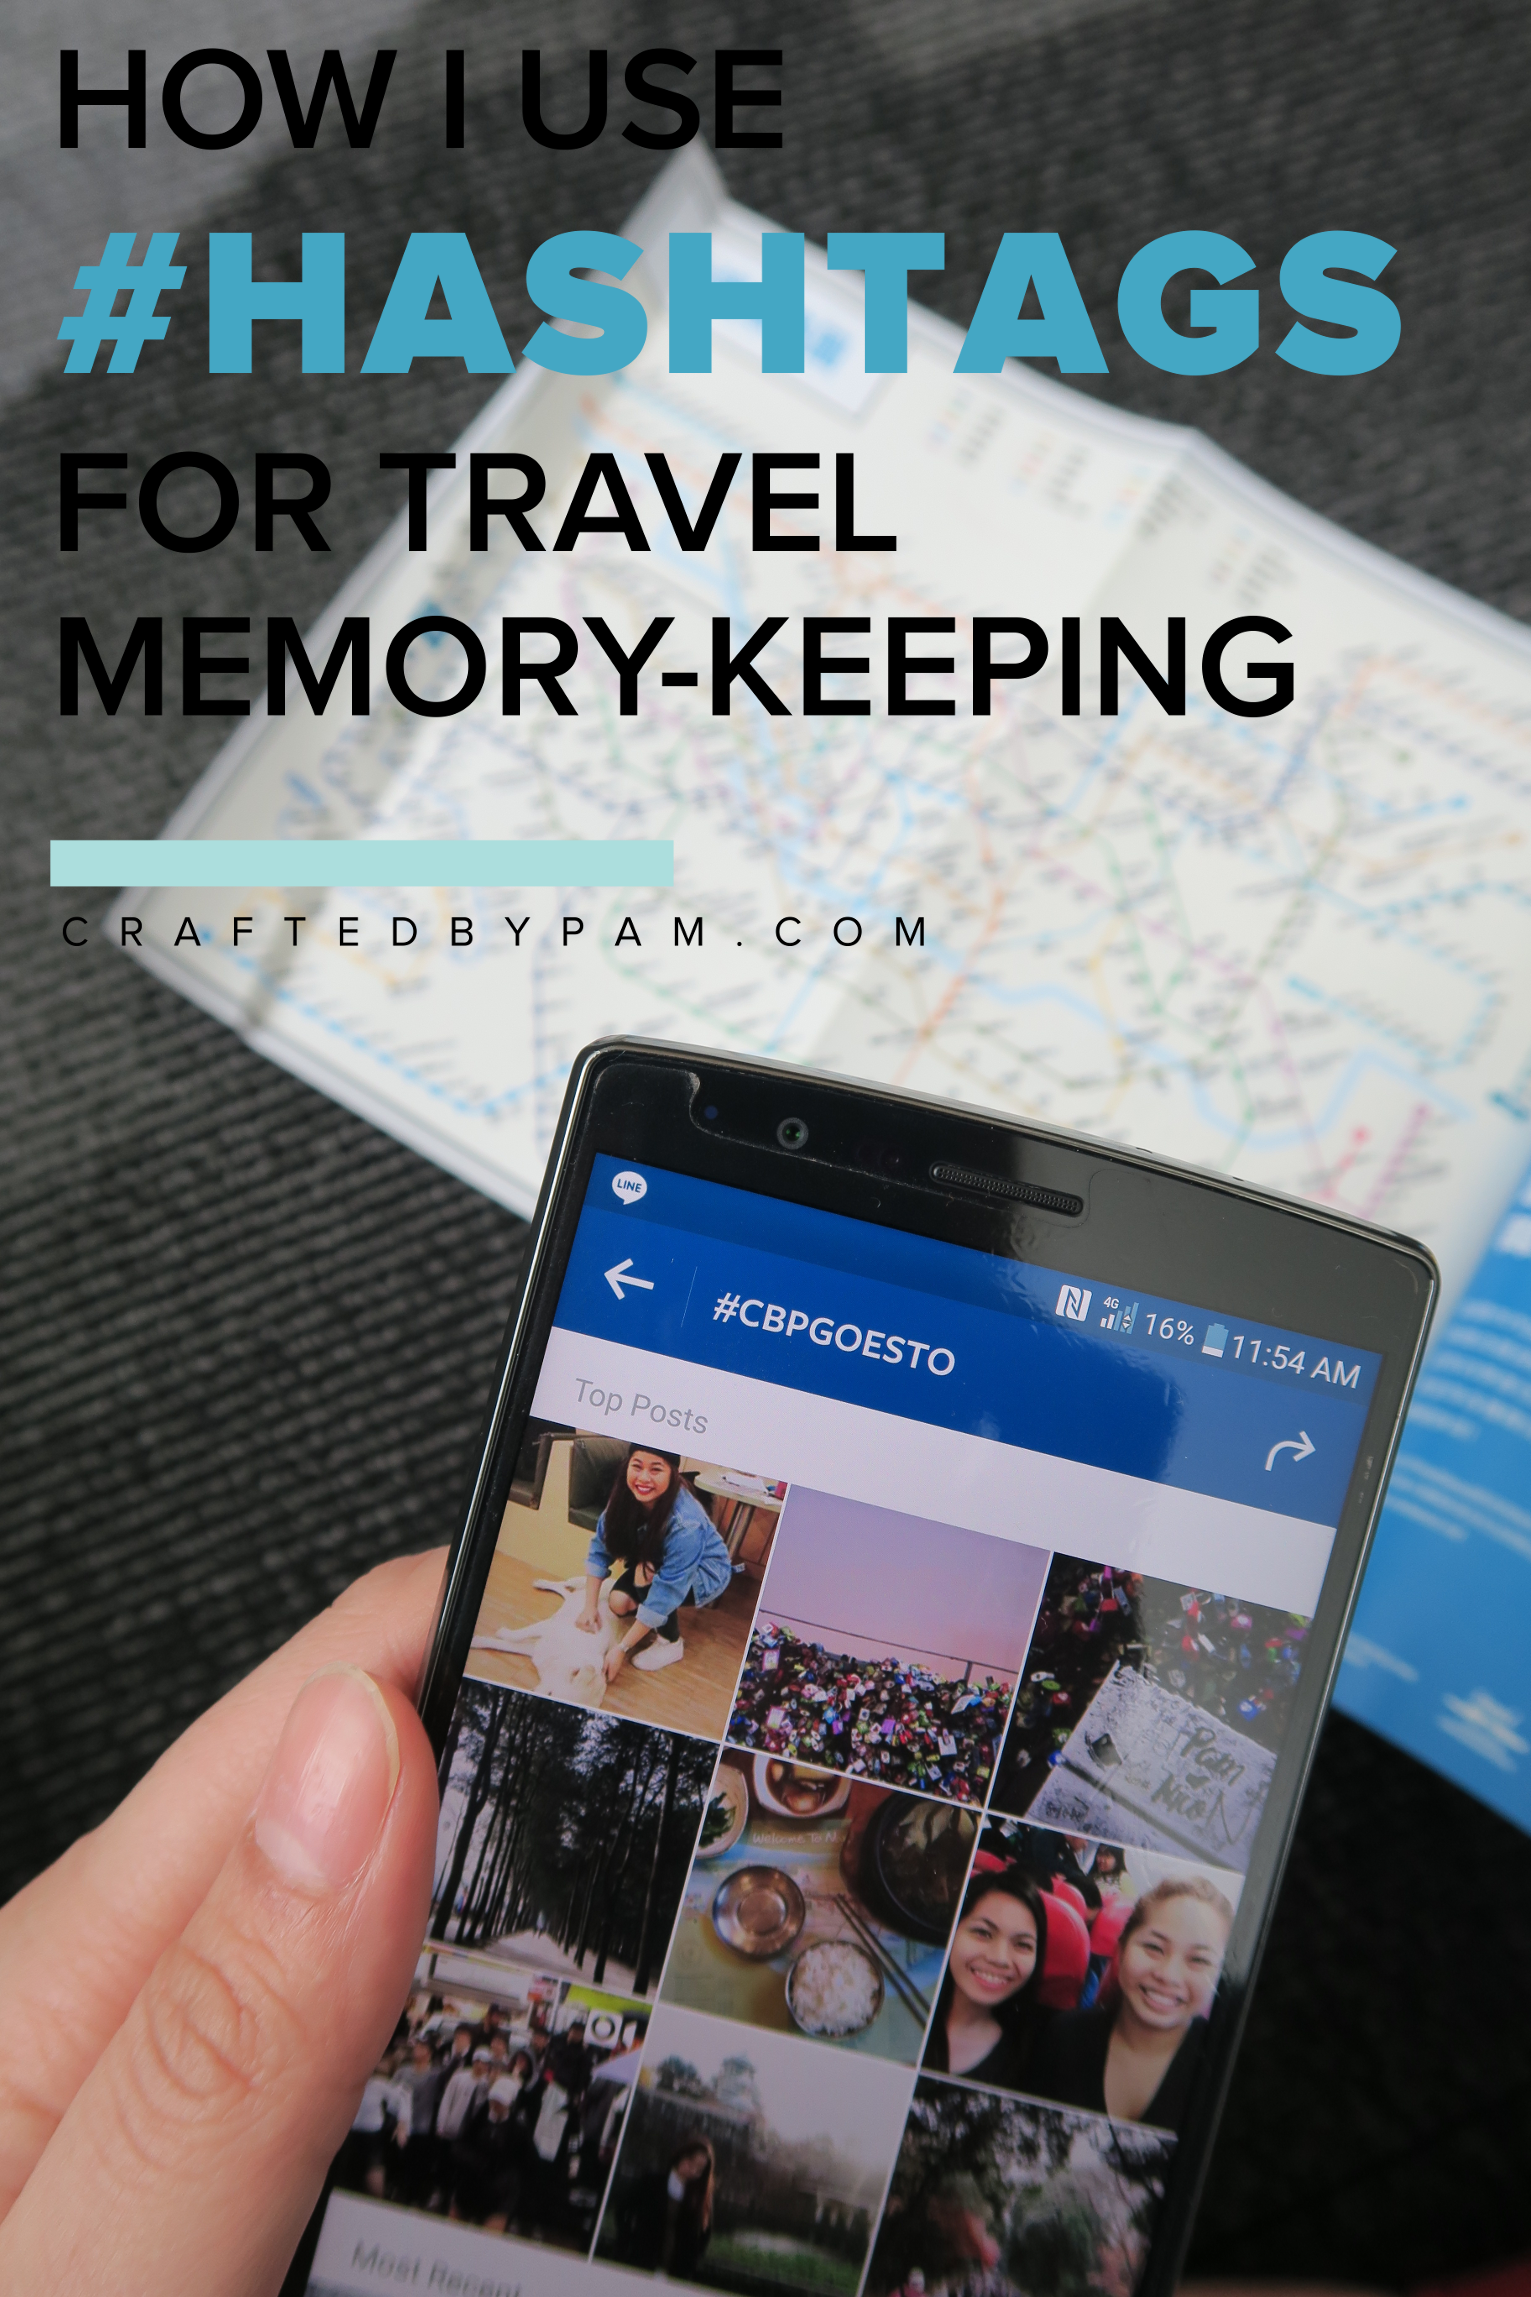 How I Use Hashtags in Travel Memory-keeping | Crafted by Pam